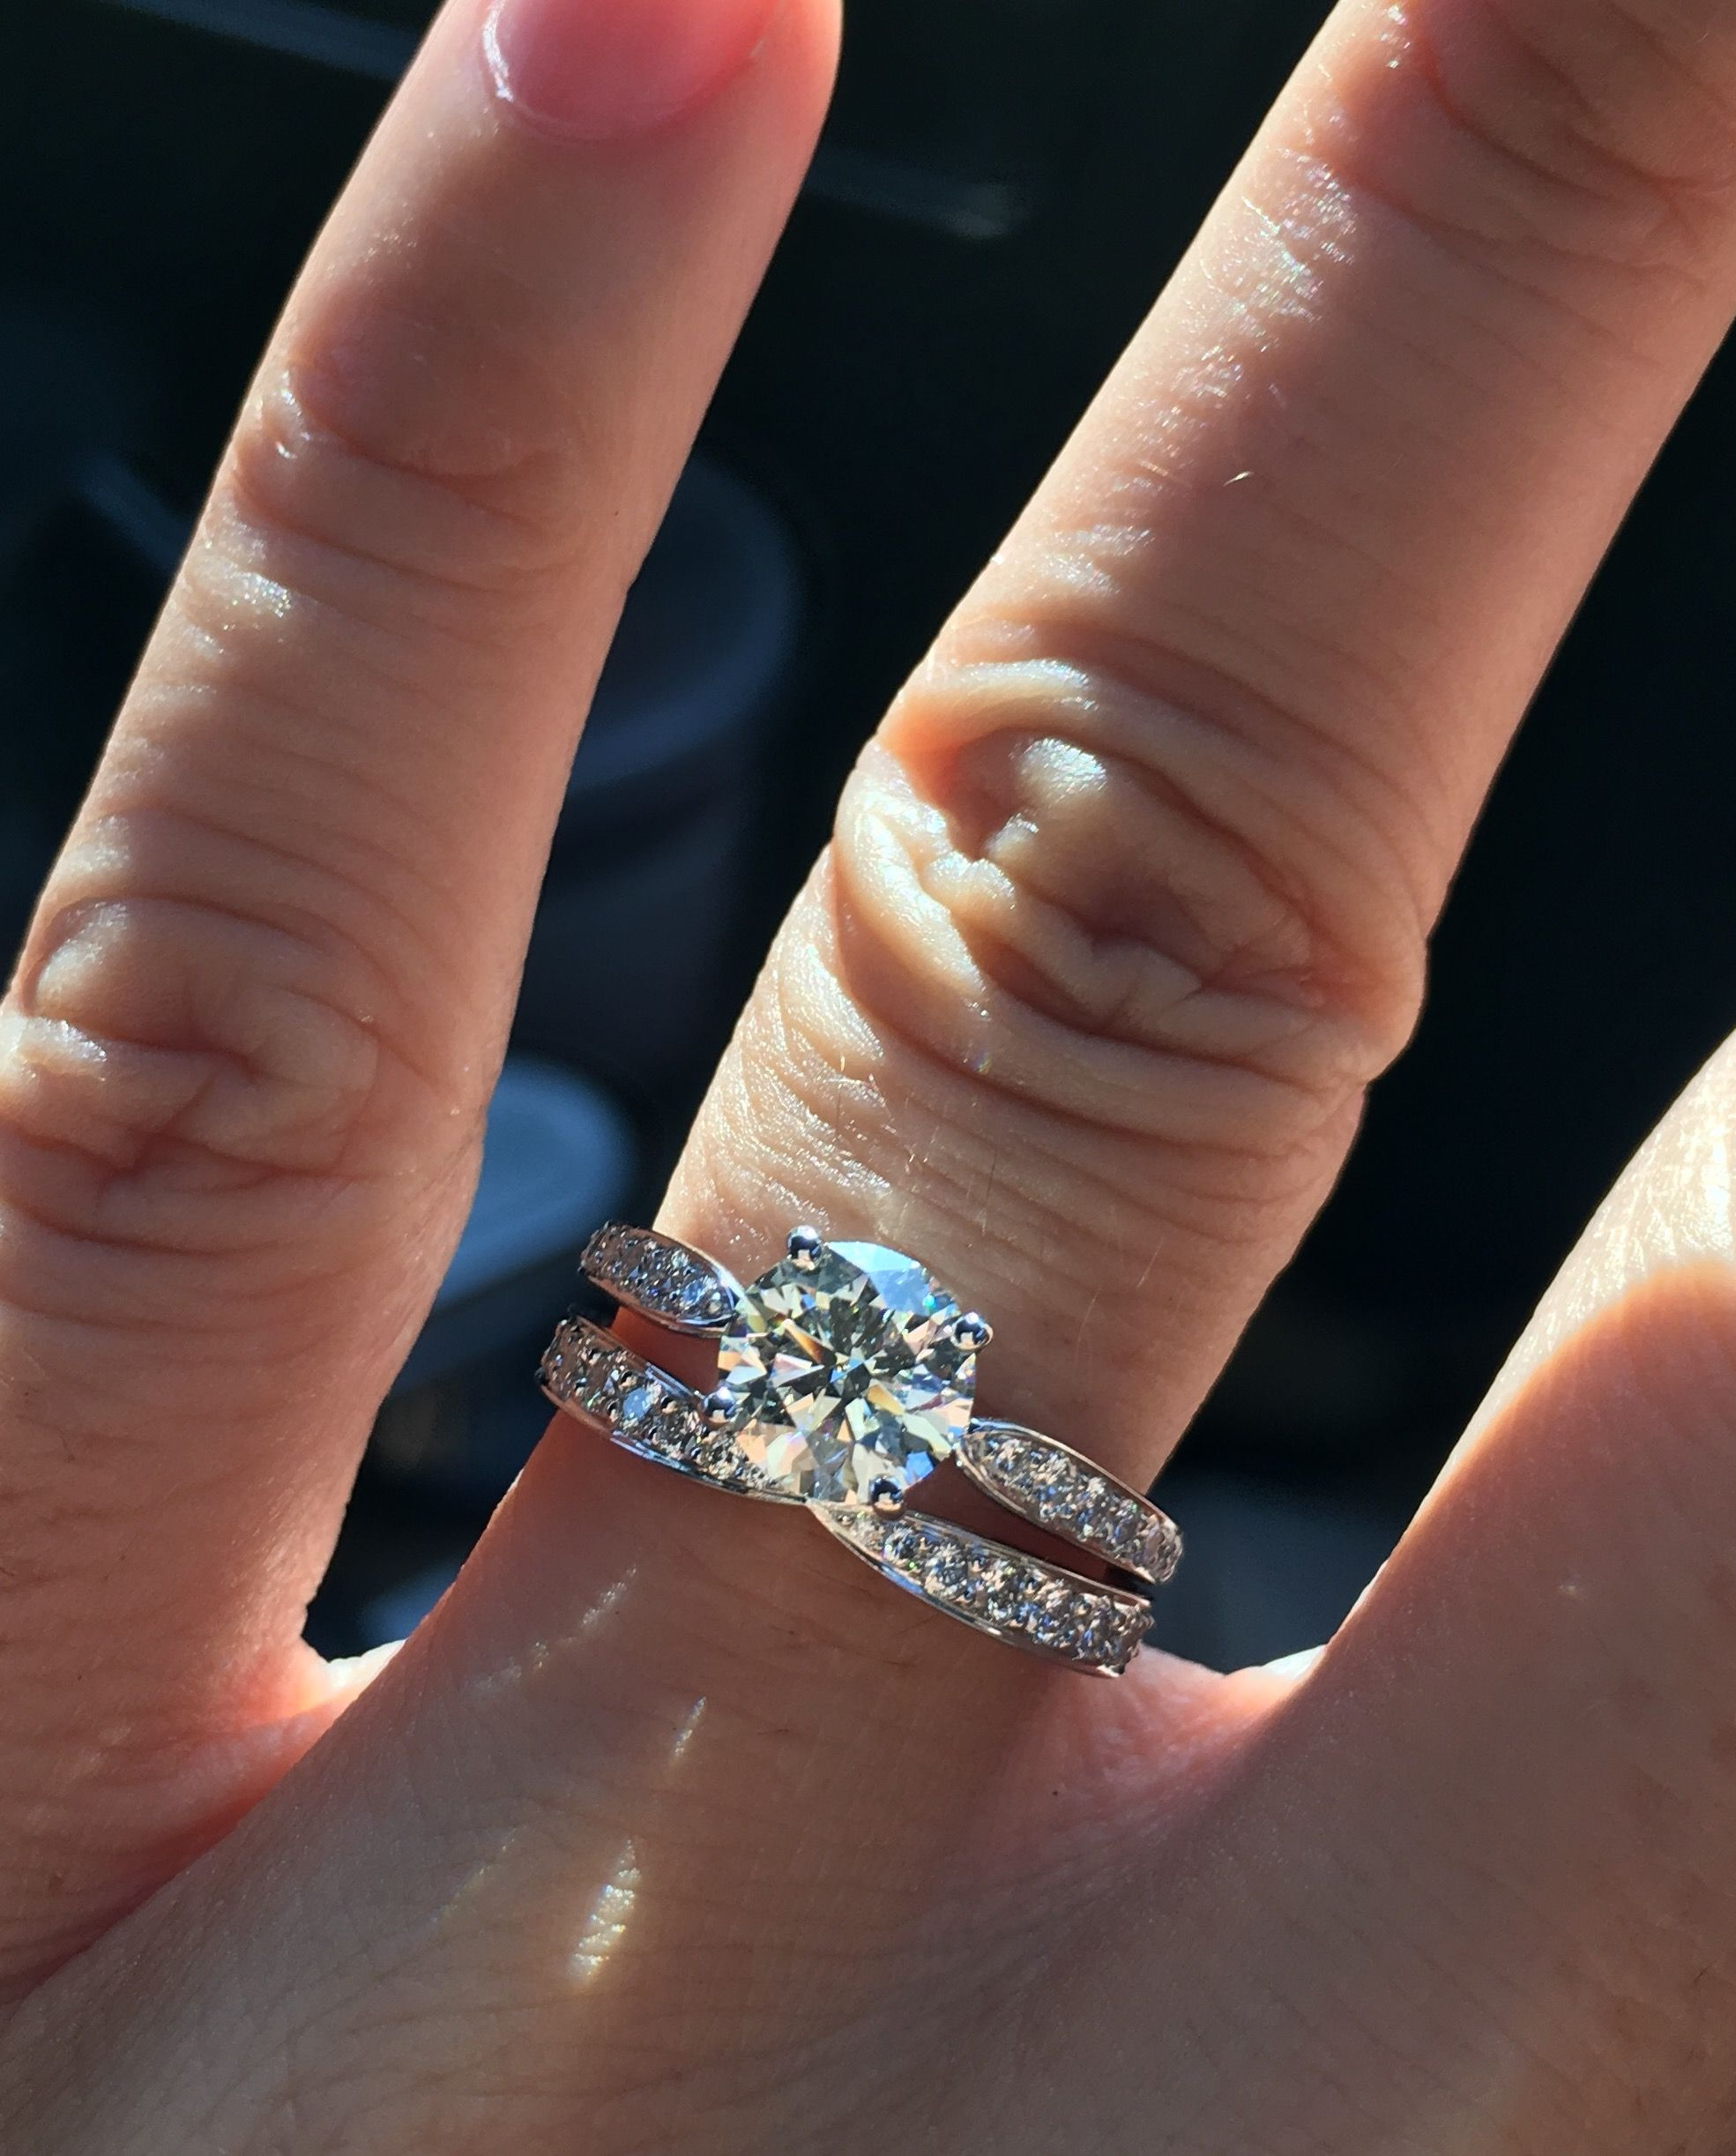 Stunning My Tiffany harmony engagement ring